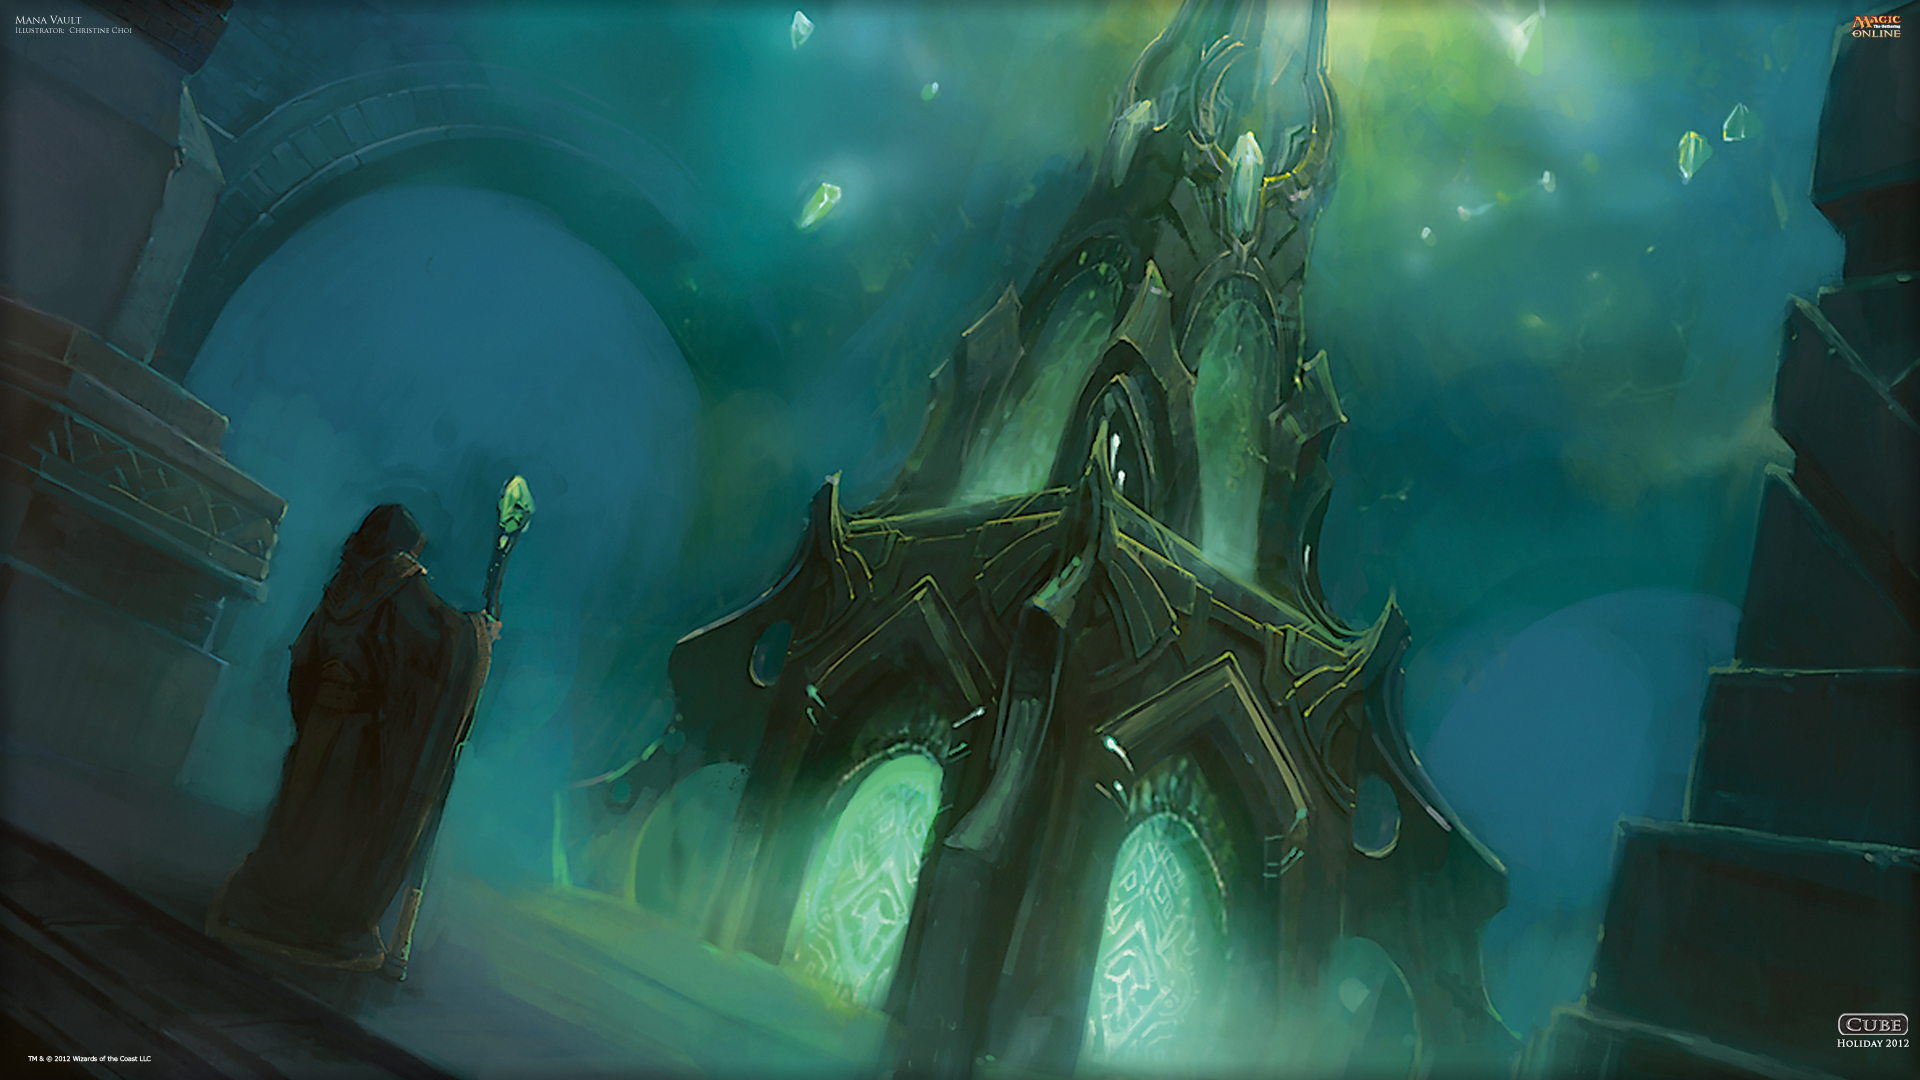 Mtg Wallpaper Wallpaper Of The Day Mana Vault Magic The Gathering